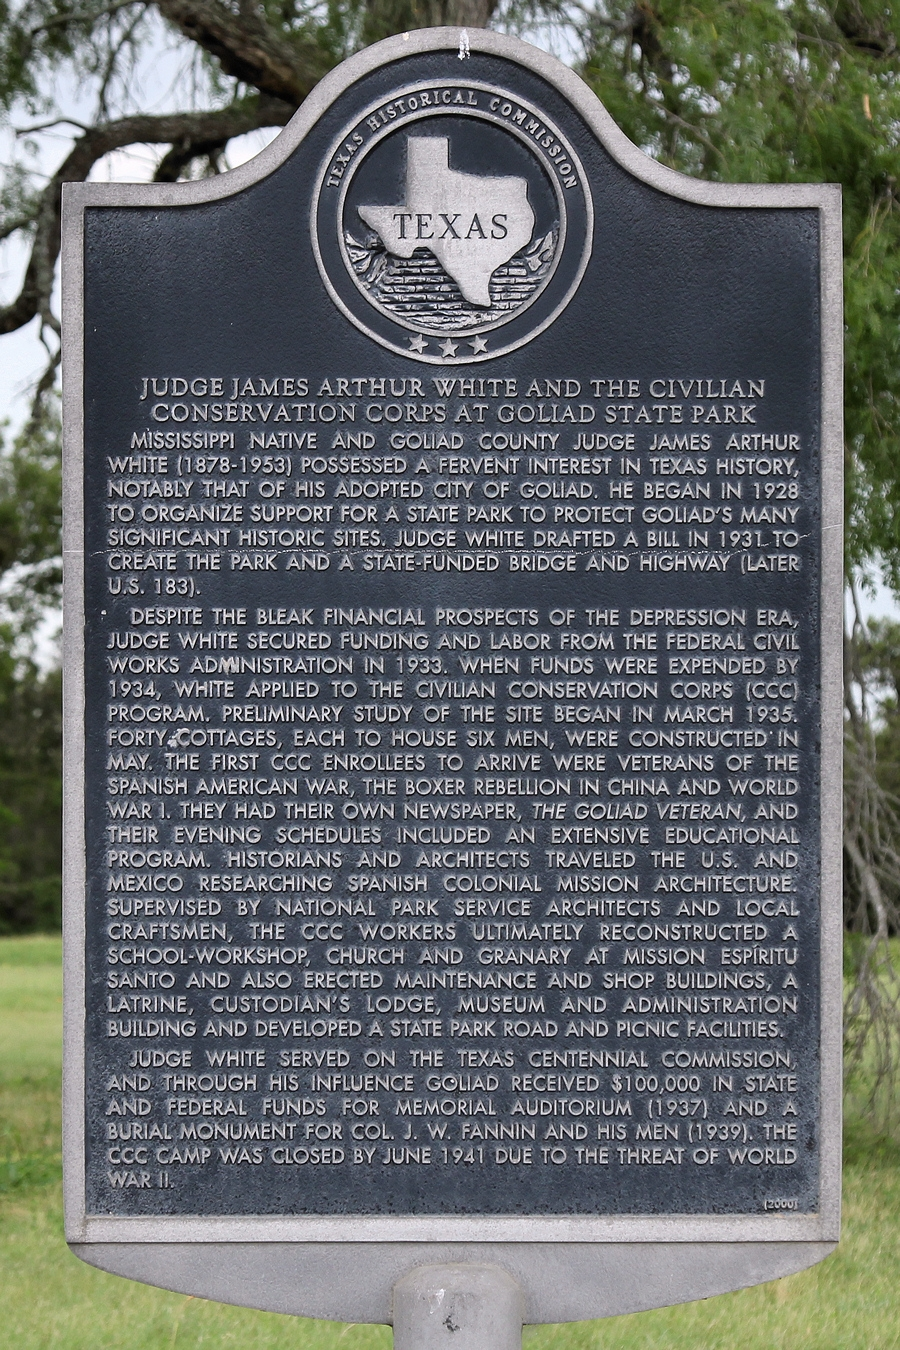 Judge James Arthur White and the Civilian Conservation Corps at Goliad State Park Marker